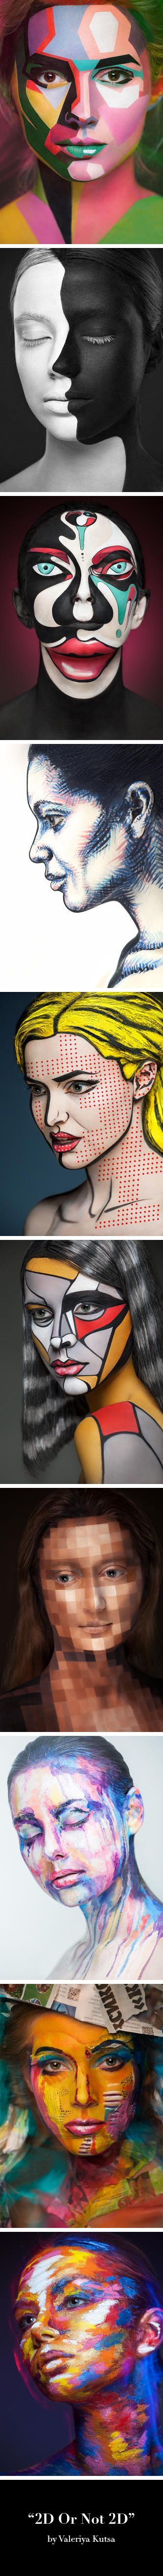 Insane Makeup Turns Models Into 2-D Paintings Of Famous Artists